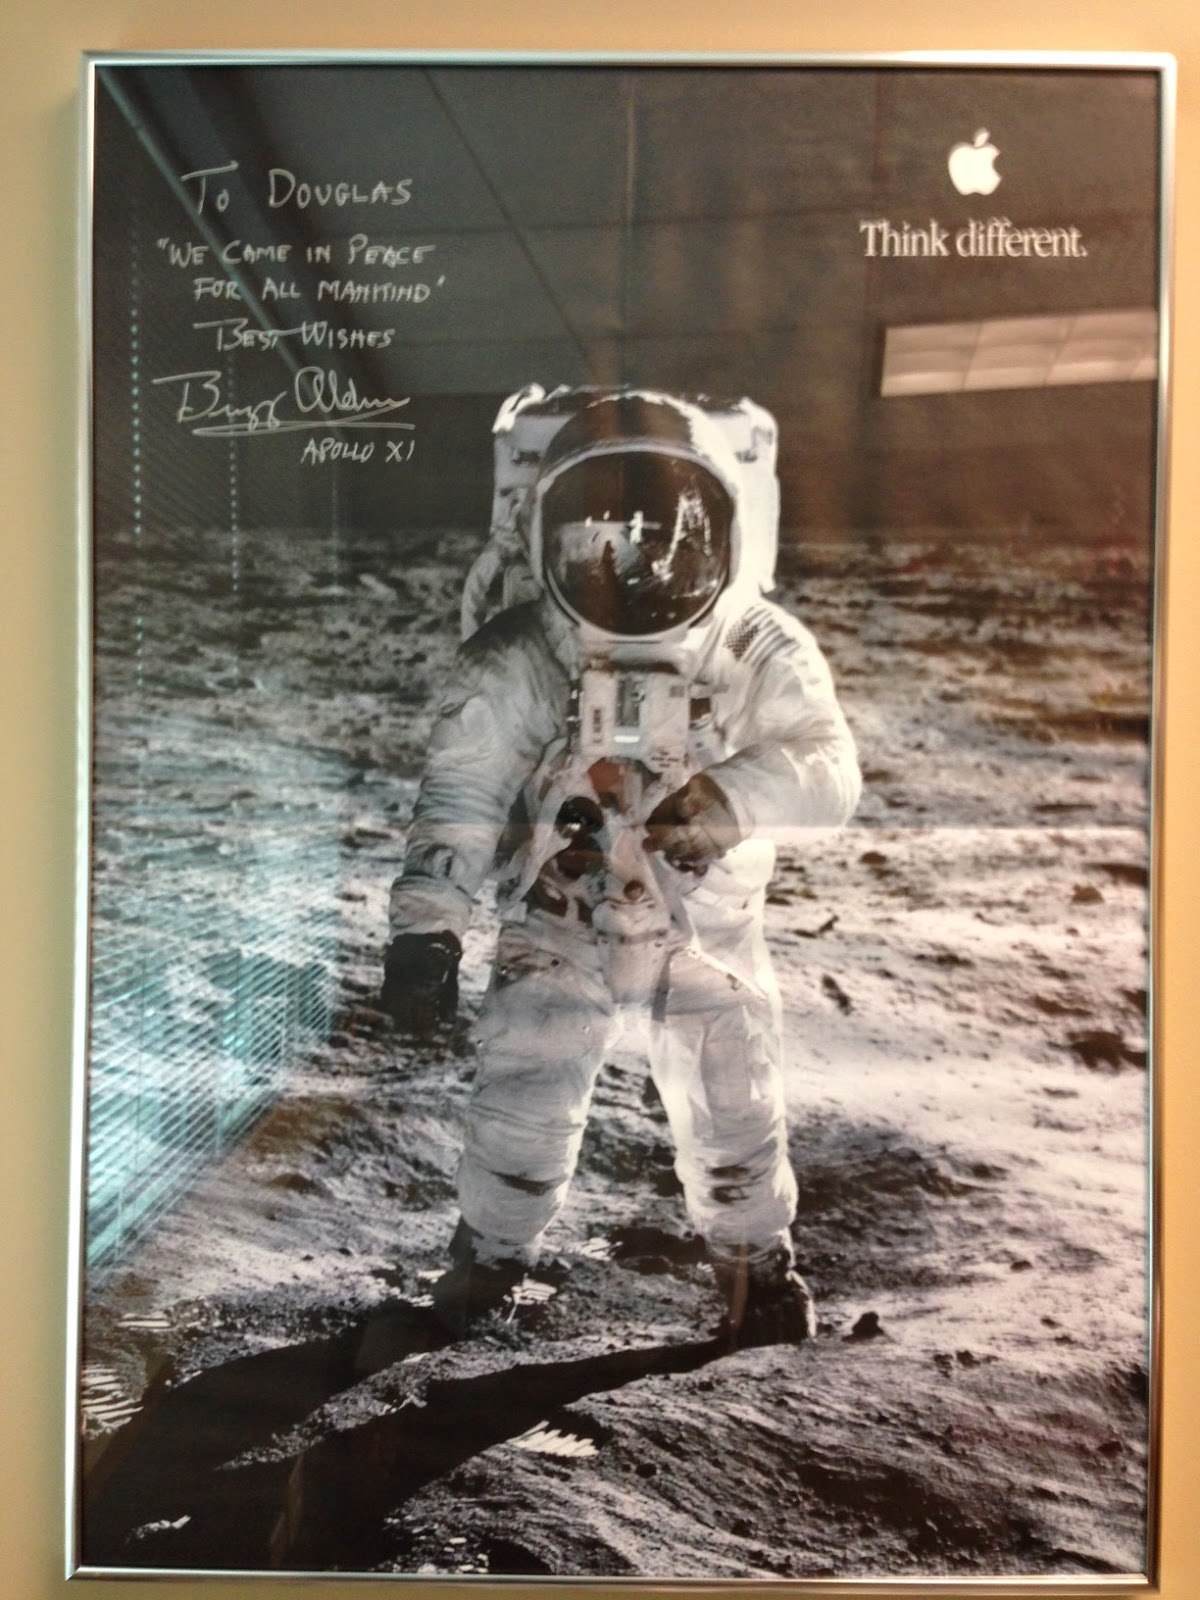 Framing large poster (Buzz Aldrin/Think Different) - collectSPACE ...